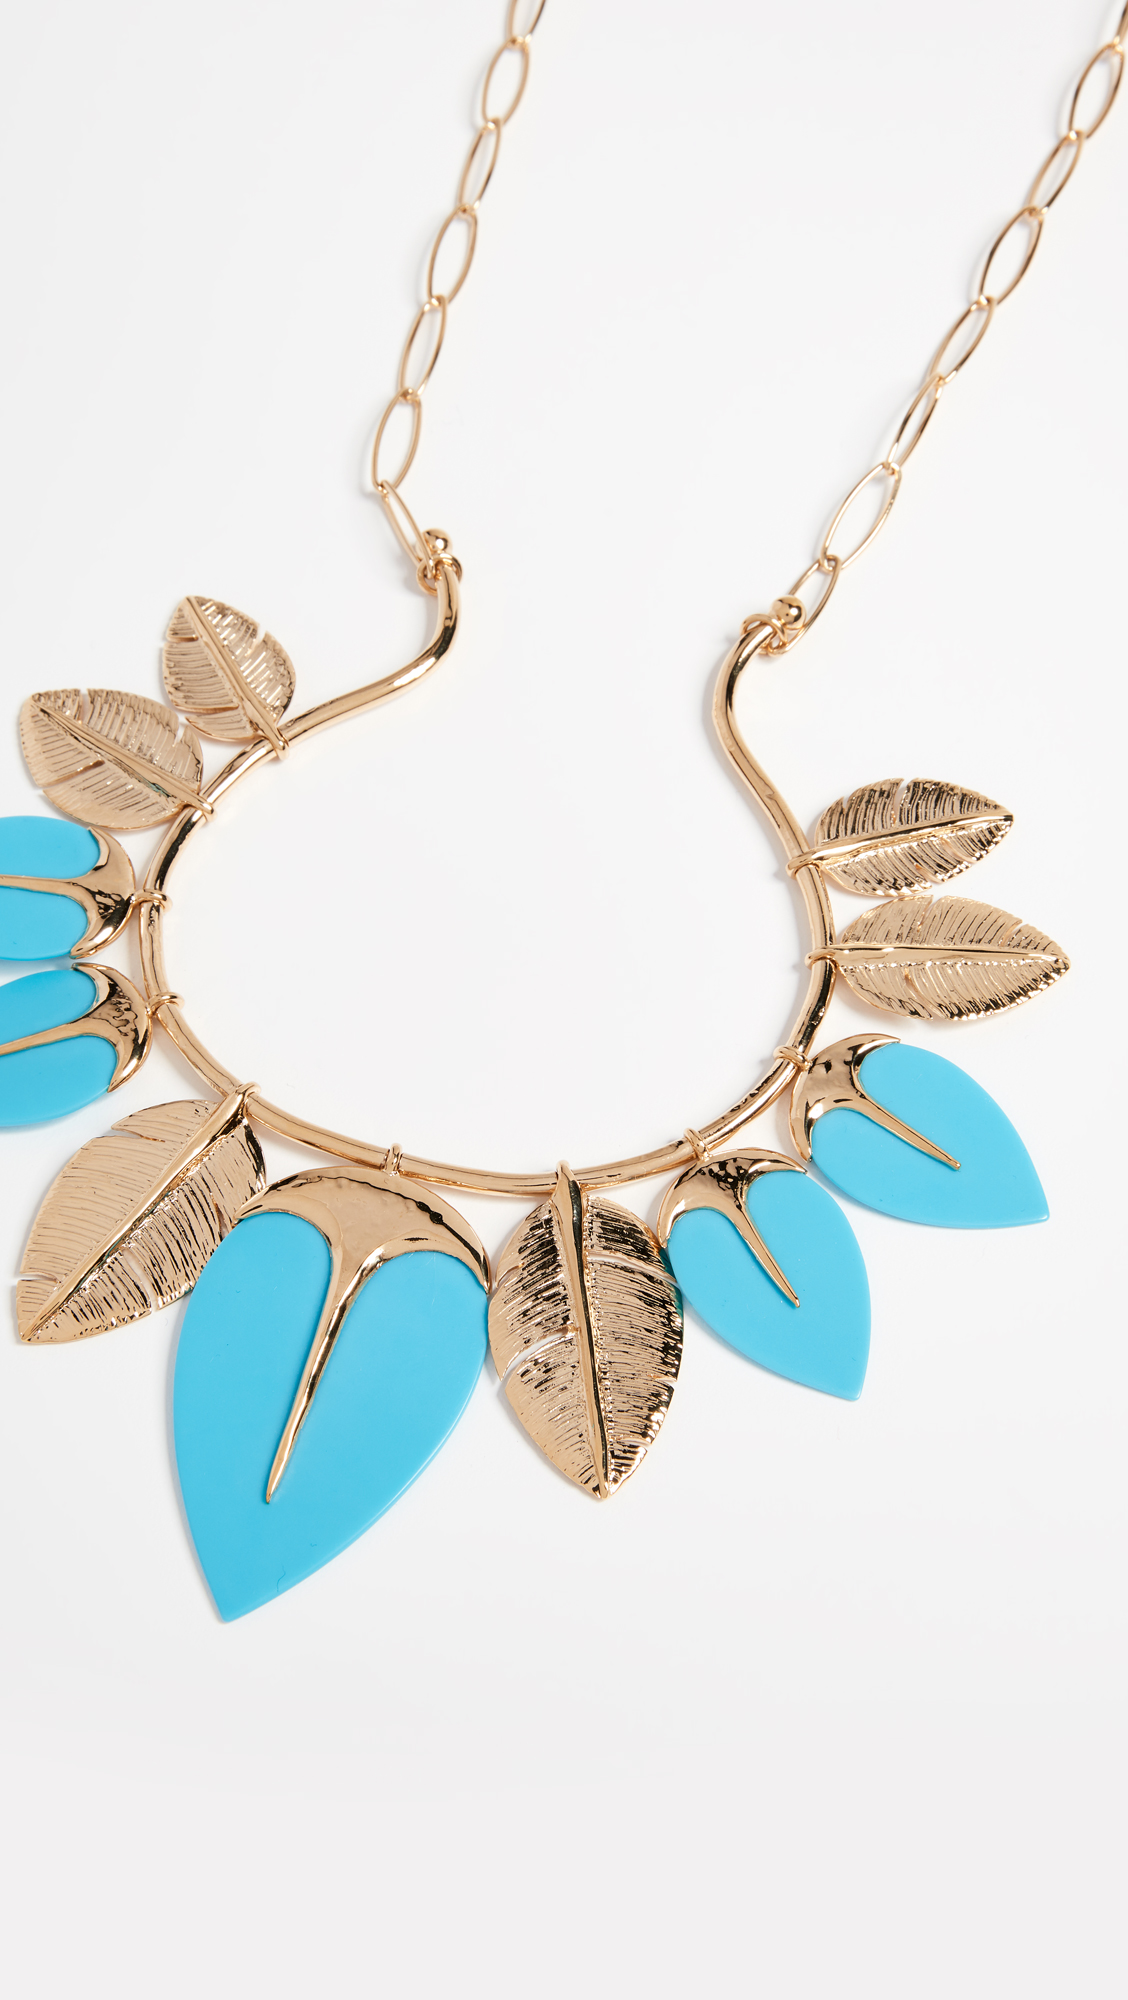 Talitha Long Necklace in Turquoise 18K Gold-Plated Brass Aur Oq8ExCEZw1